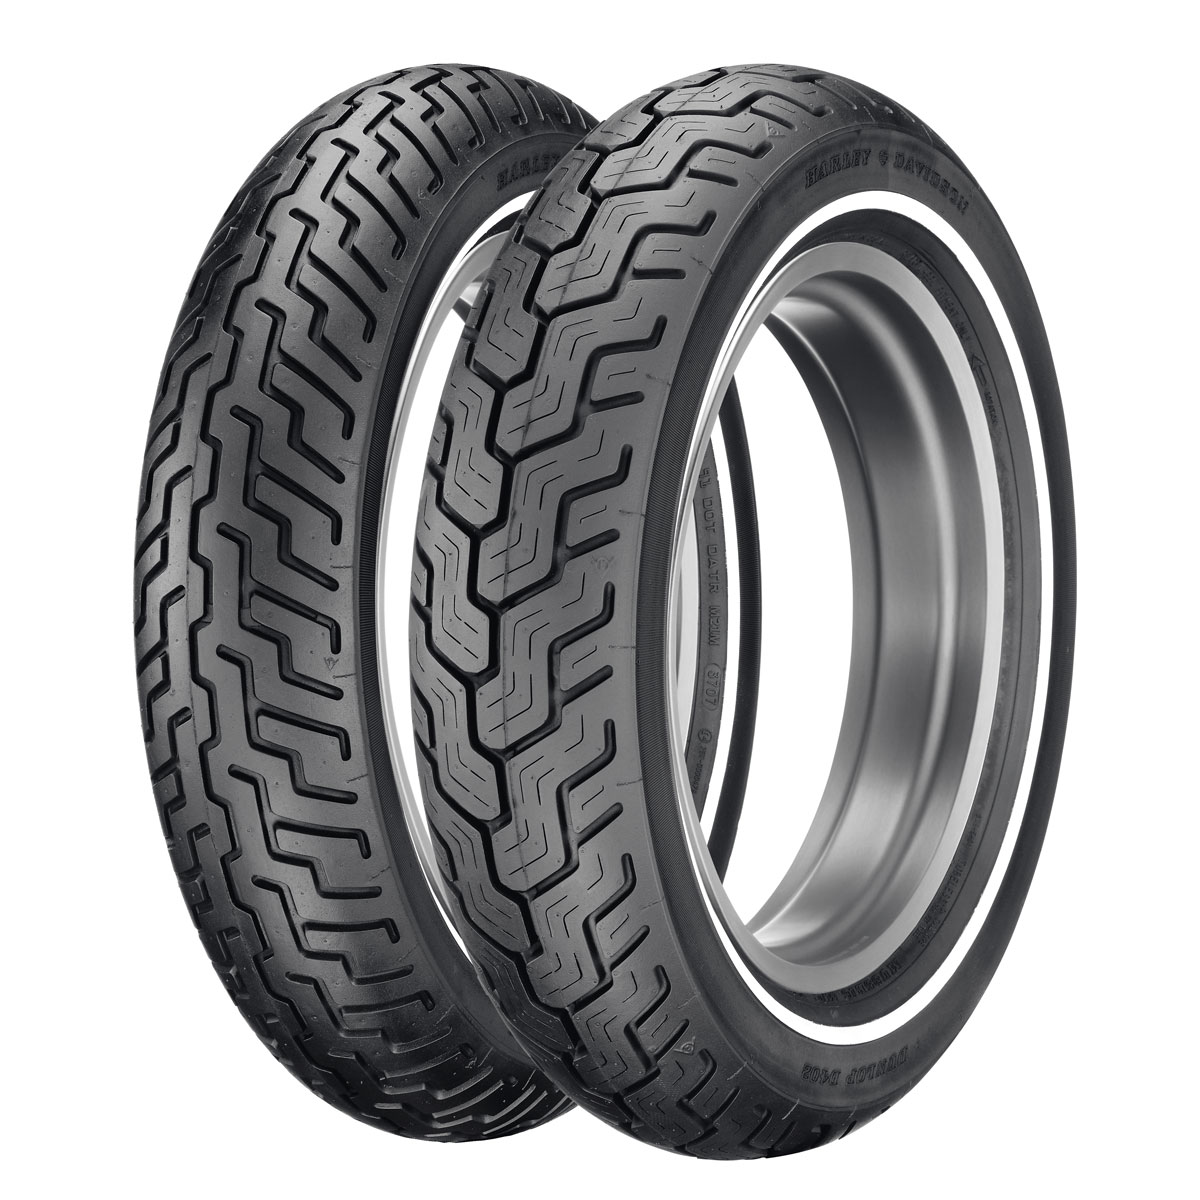 Dunlop D402 Touring MT90B16 Narrow Whitewall Front Tire